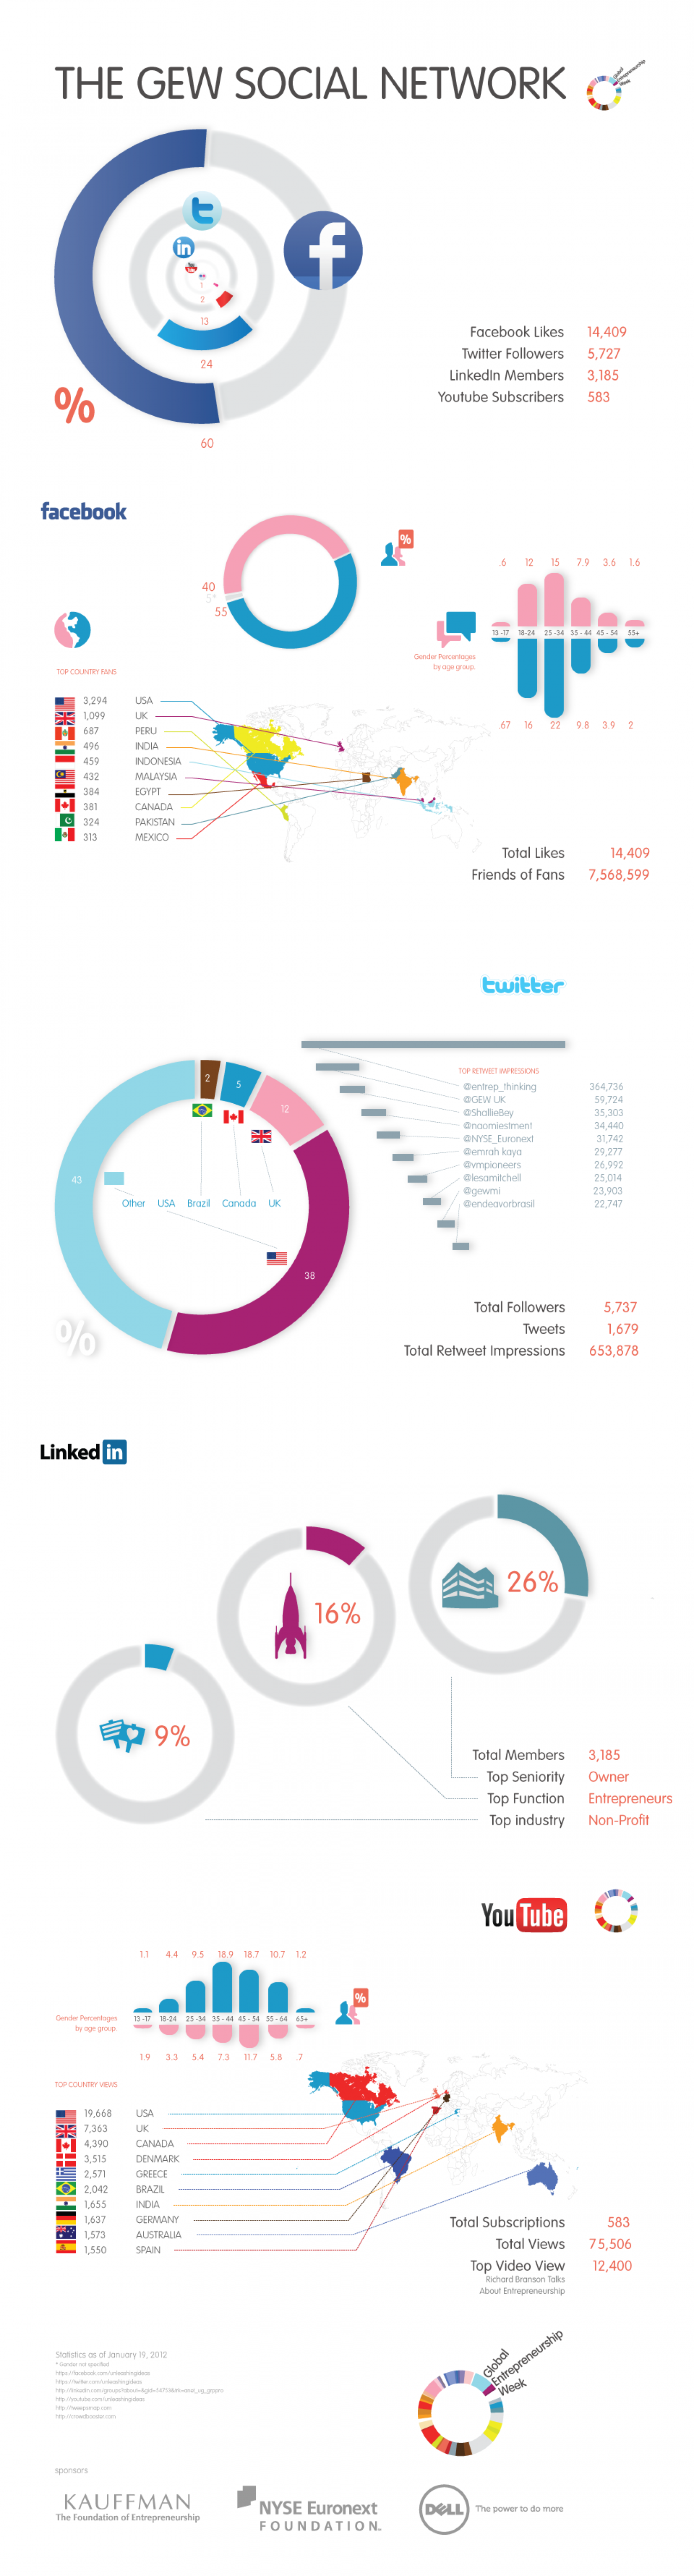 The GEW Social Network Infographic